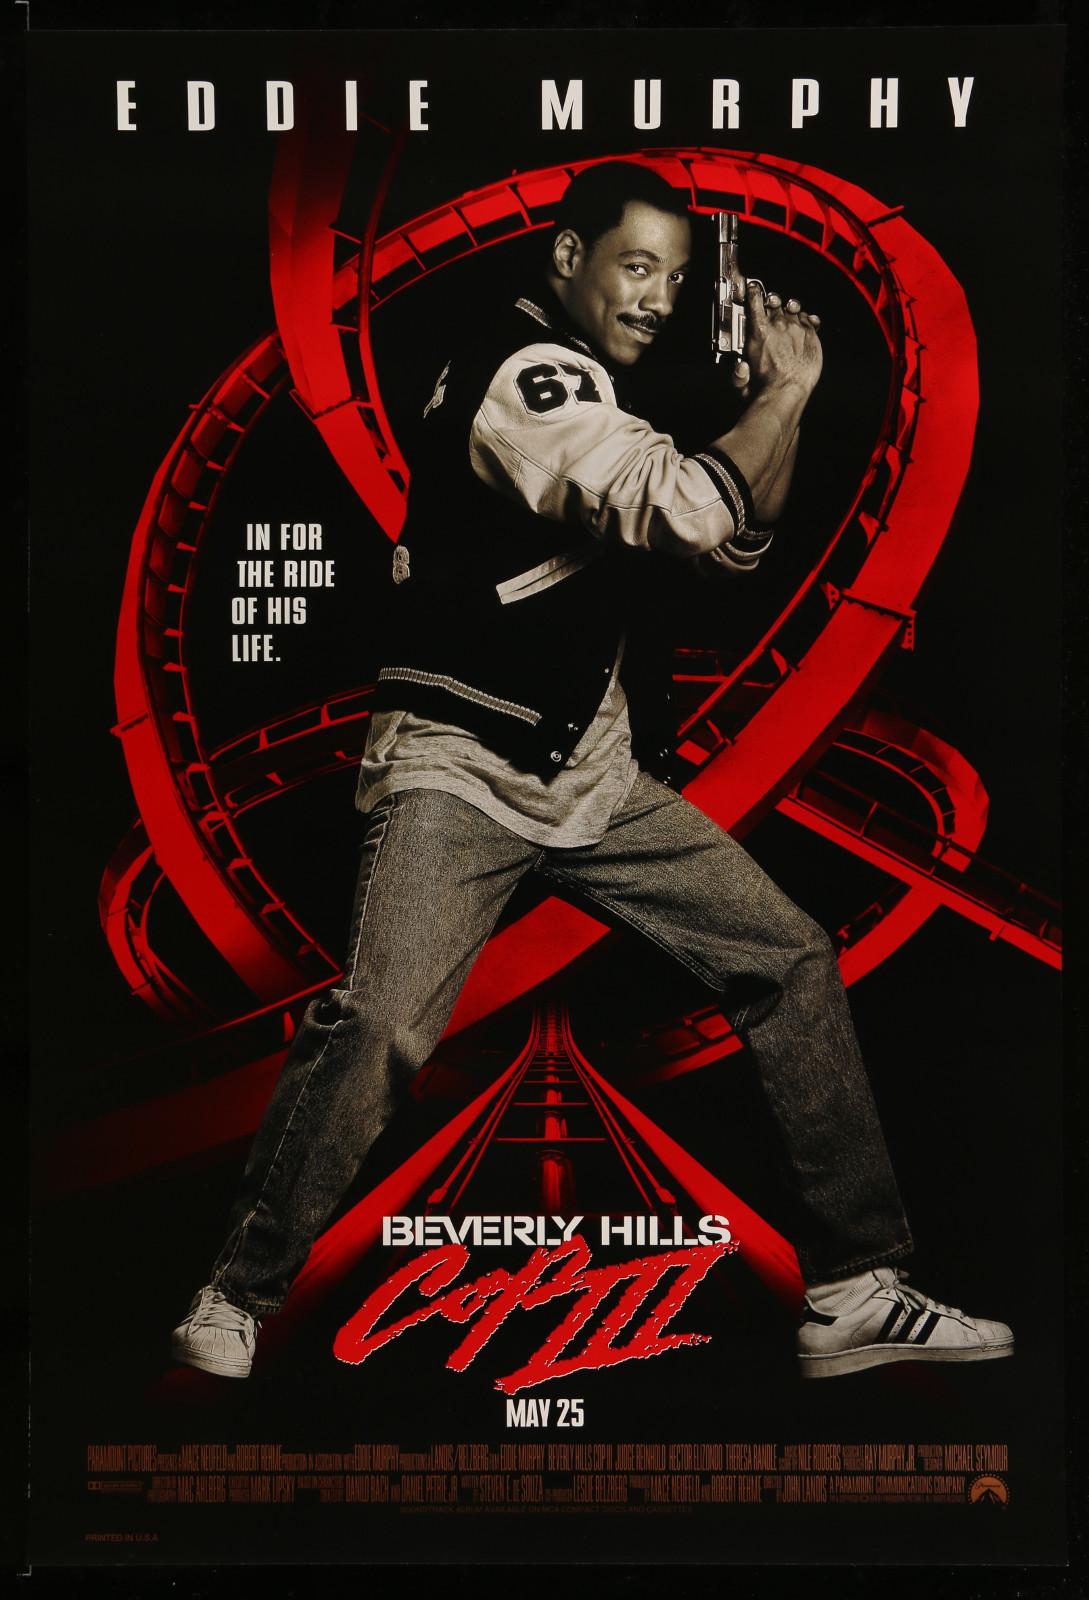 Beverly Hills Cop Iii 2A355 A Part Of A Lot 31 Unfolded Mostly Double-Sided 27X40 One-Sheets '90S Cool Movie Images!